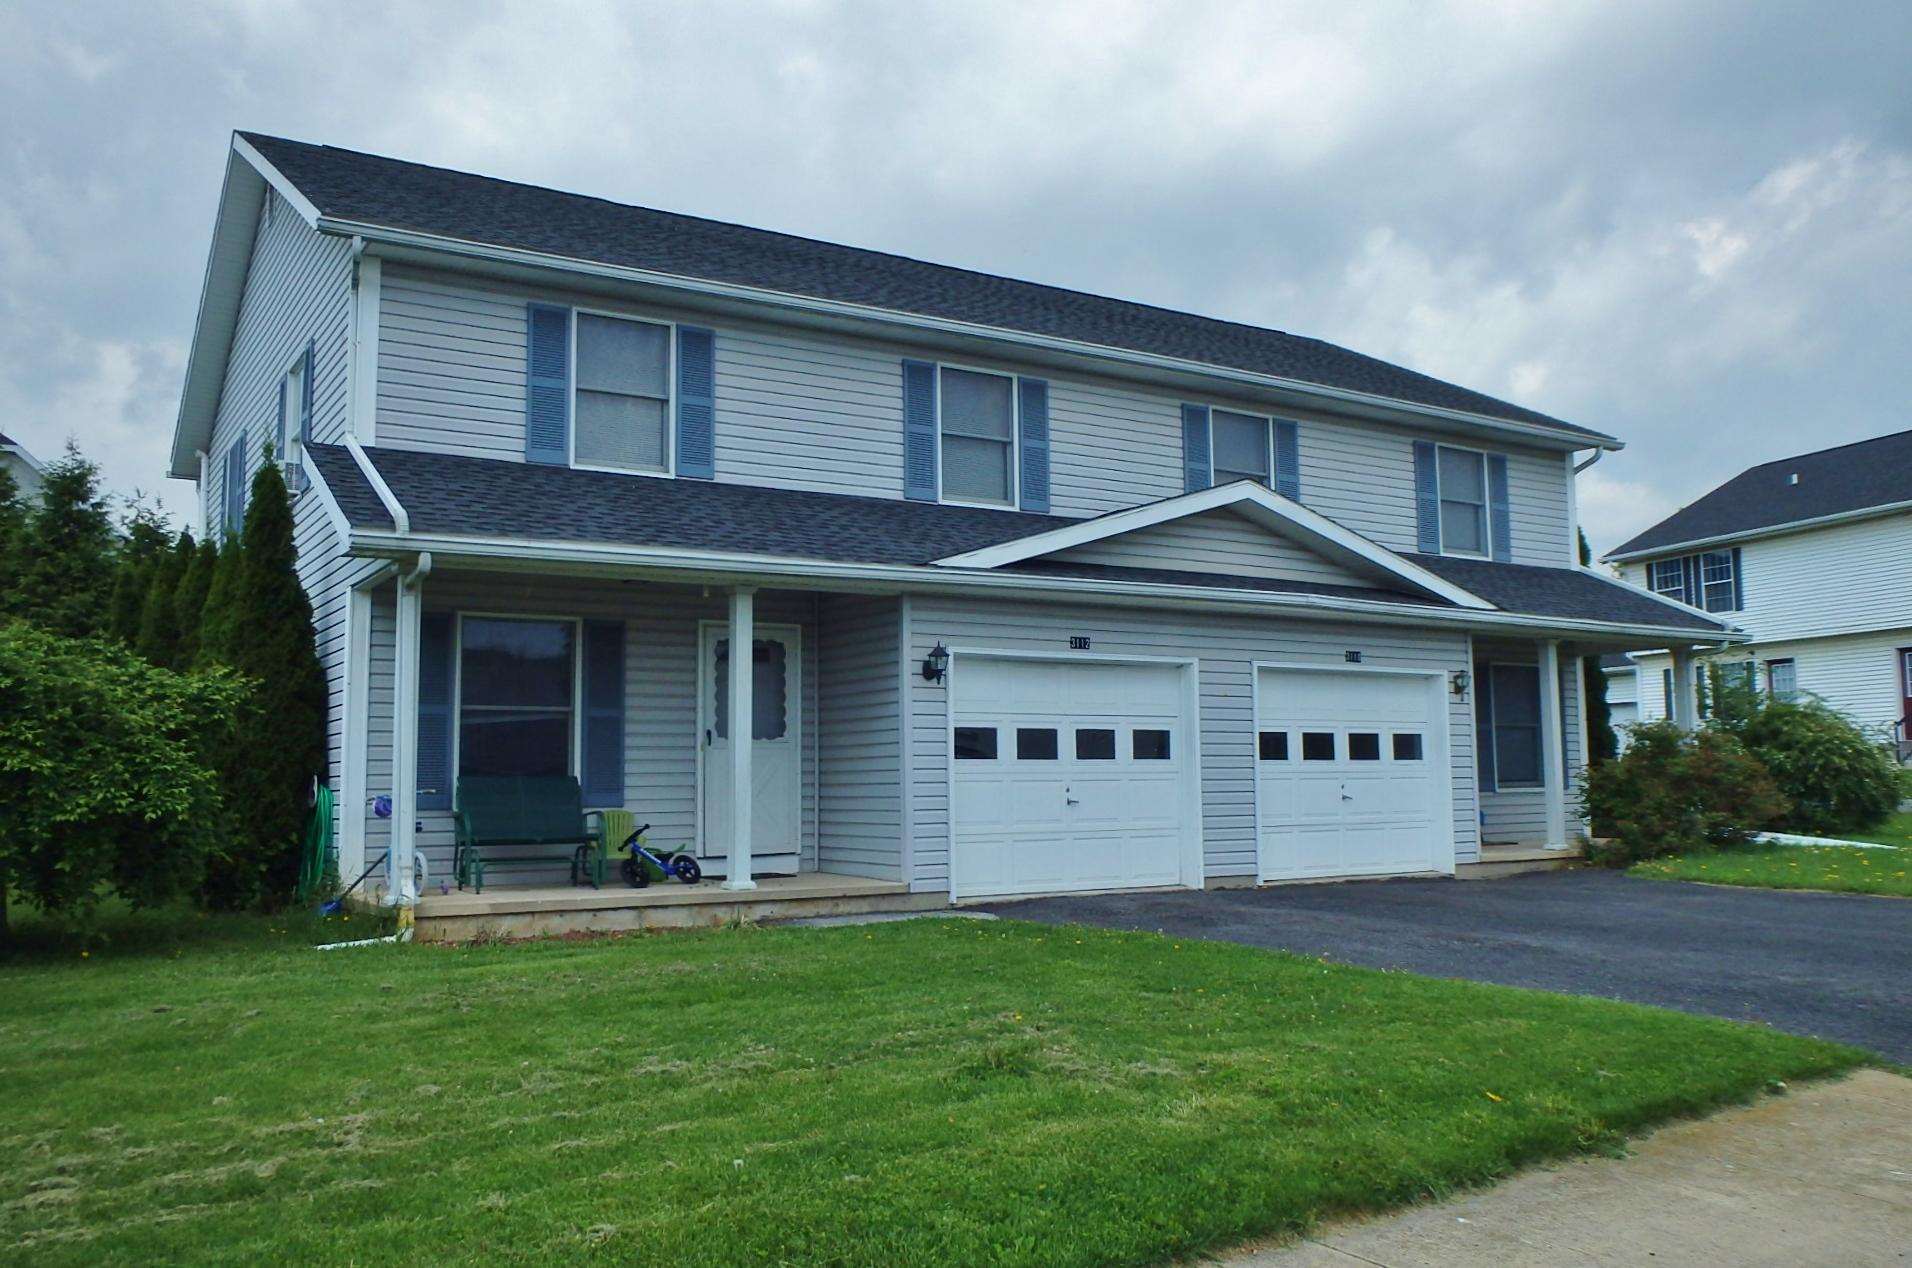 3112 Shellers Bend, 3-Bedroom Duplex for rent in State College, PA.